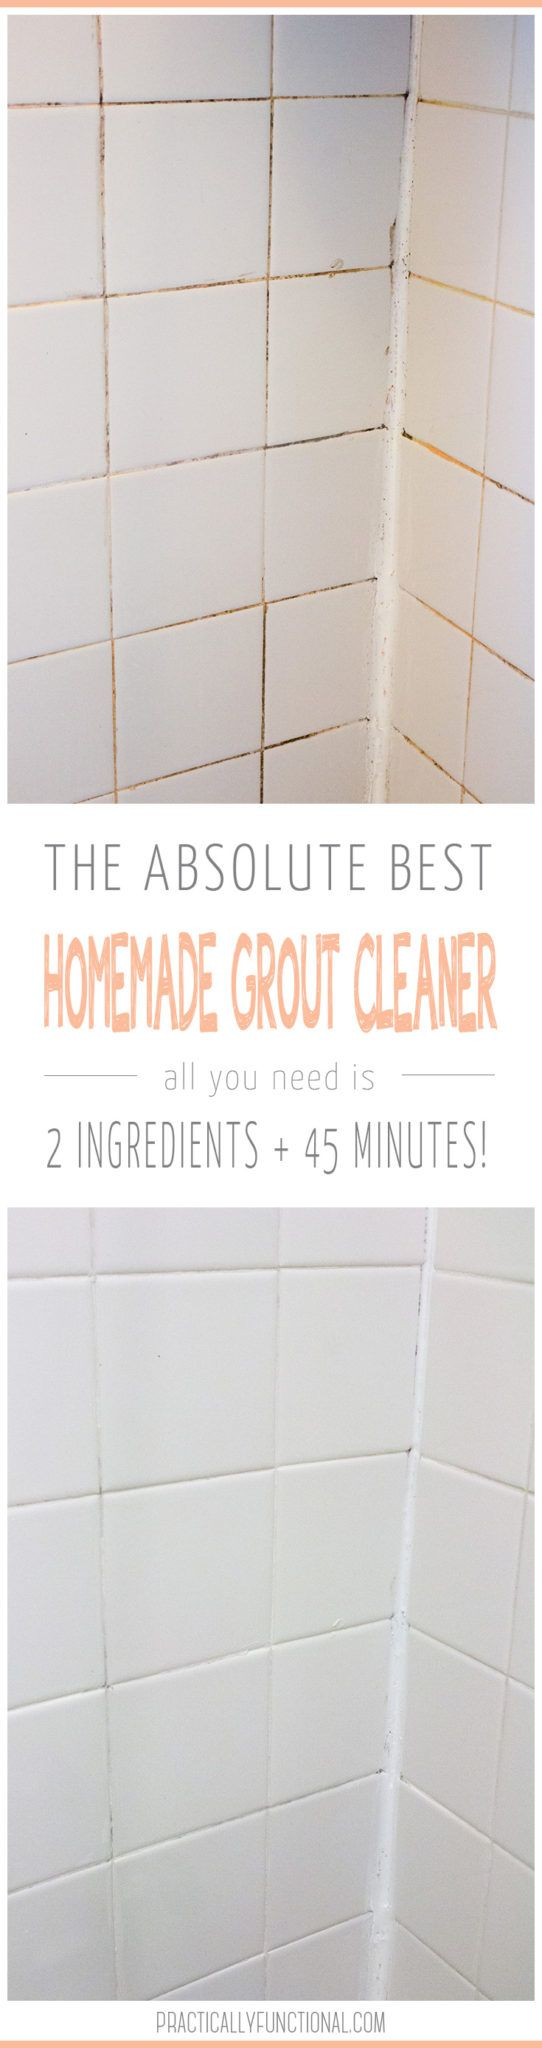 How To Clean Grout With Peroxide Baking Soda Ehow Cleaning Hacks Household Cleaning Tips Cleaning Household